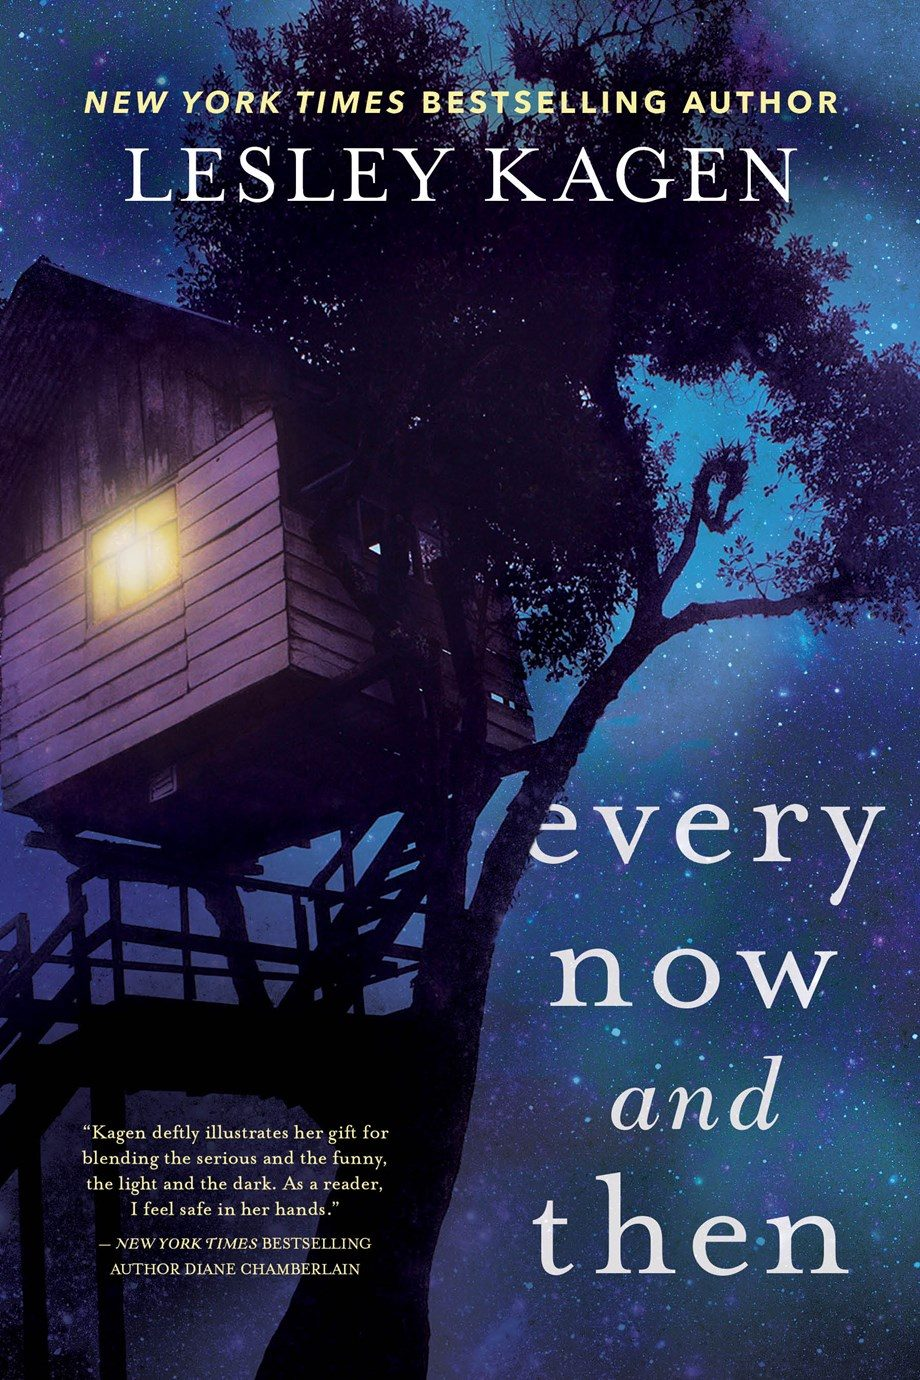 When Does Every Now And Then By Lesley Kagen Come Out? 2020 Historical Fiction Releases